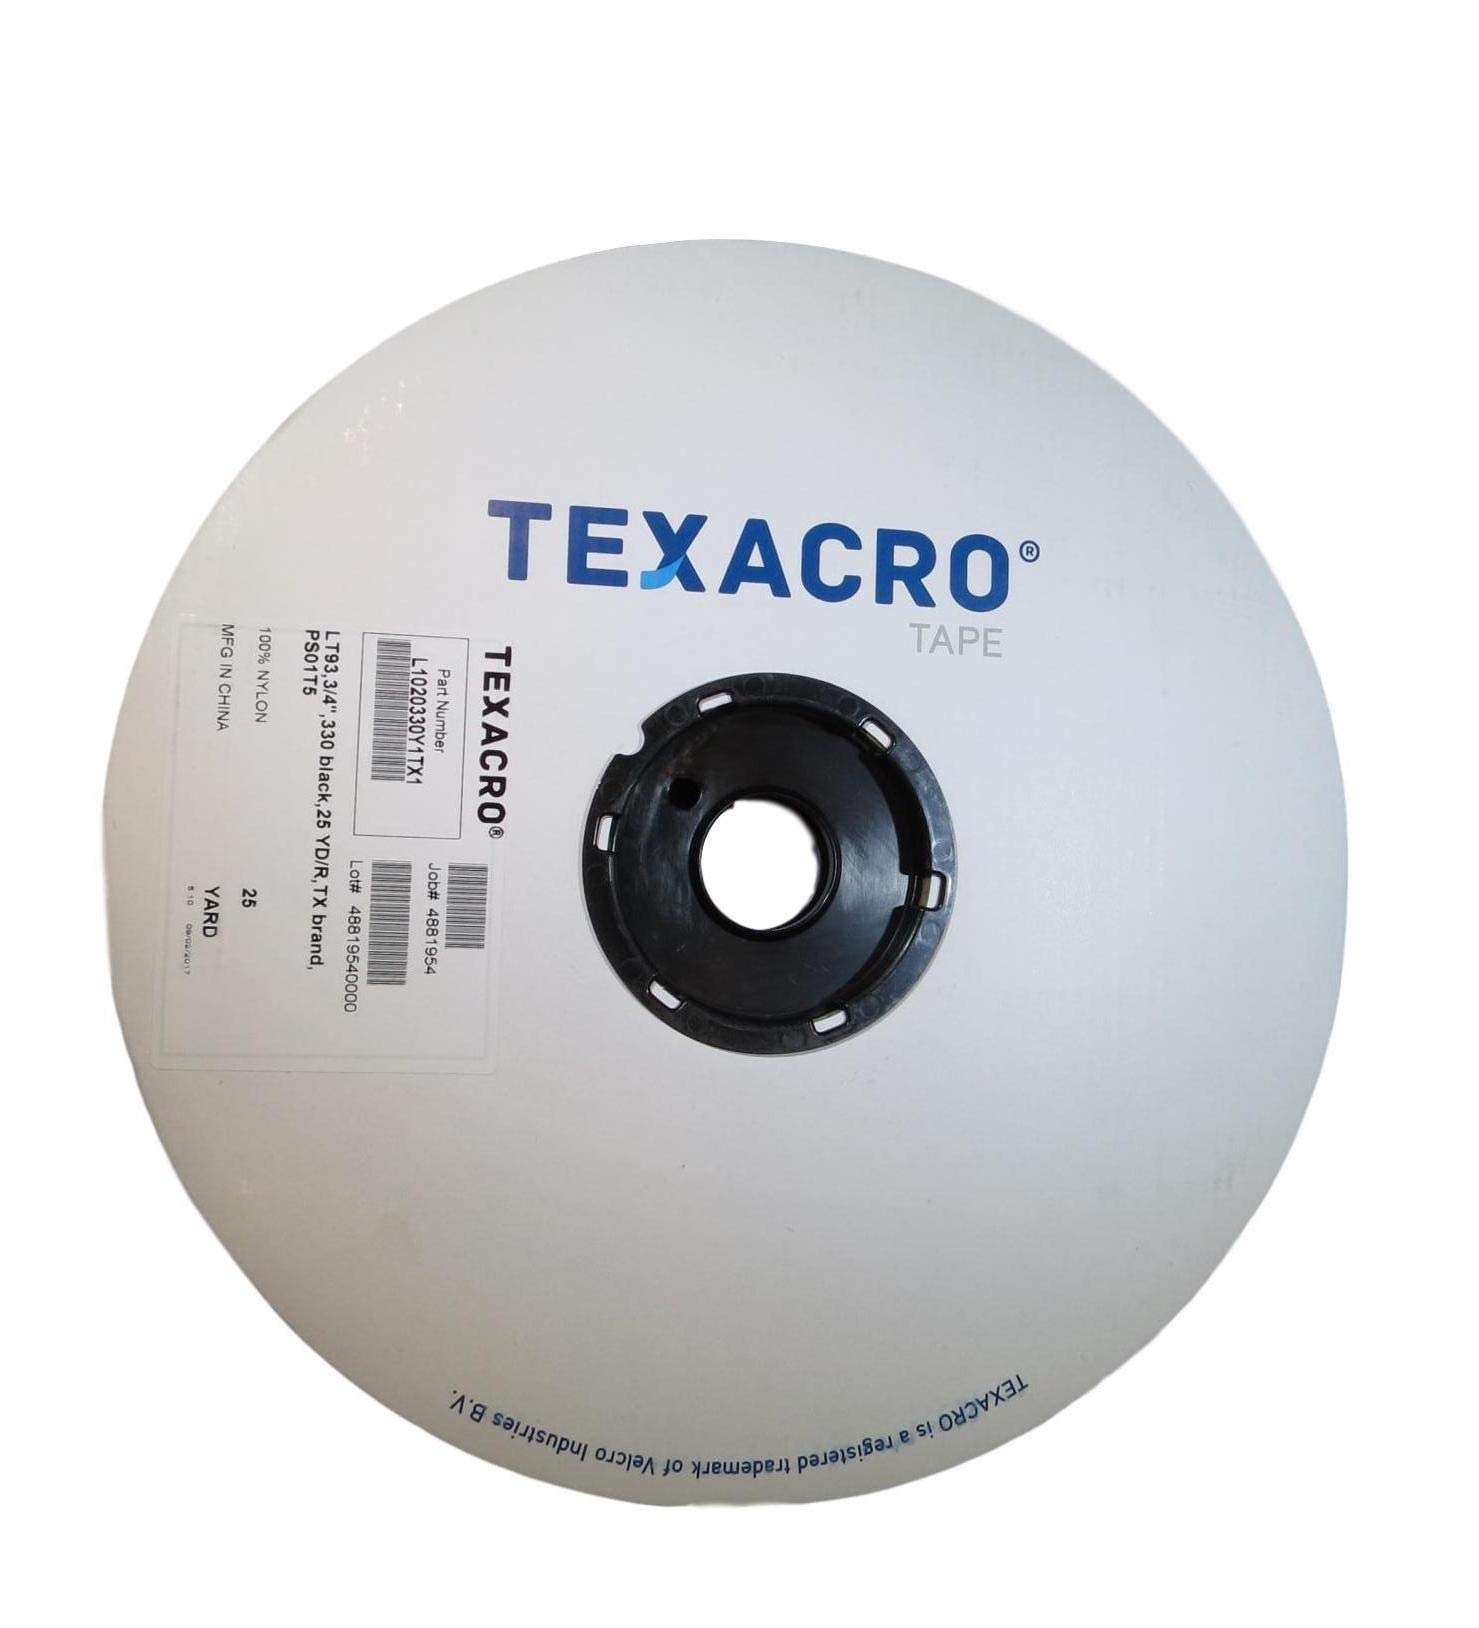 T.R.U. Texacro Hook or Loop Fasteners with Residue Free Adhesive. Available in Multiple Sizes and Colors (Loop-White, 2'') by Texacro